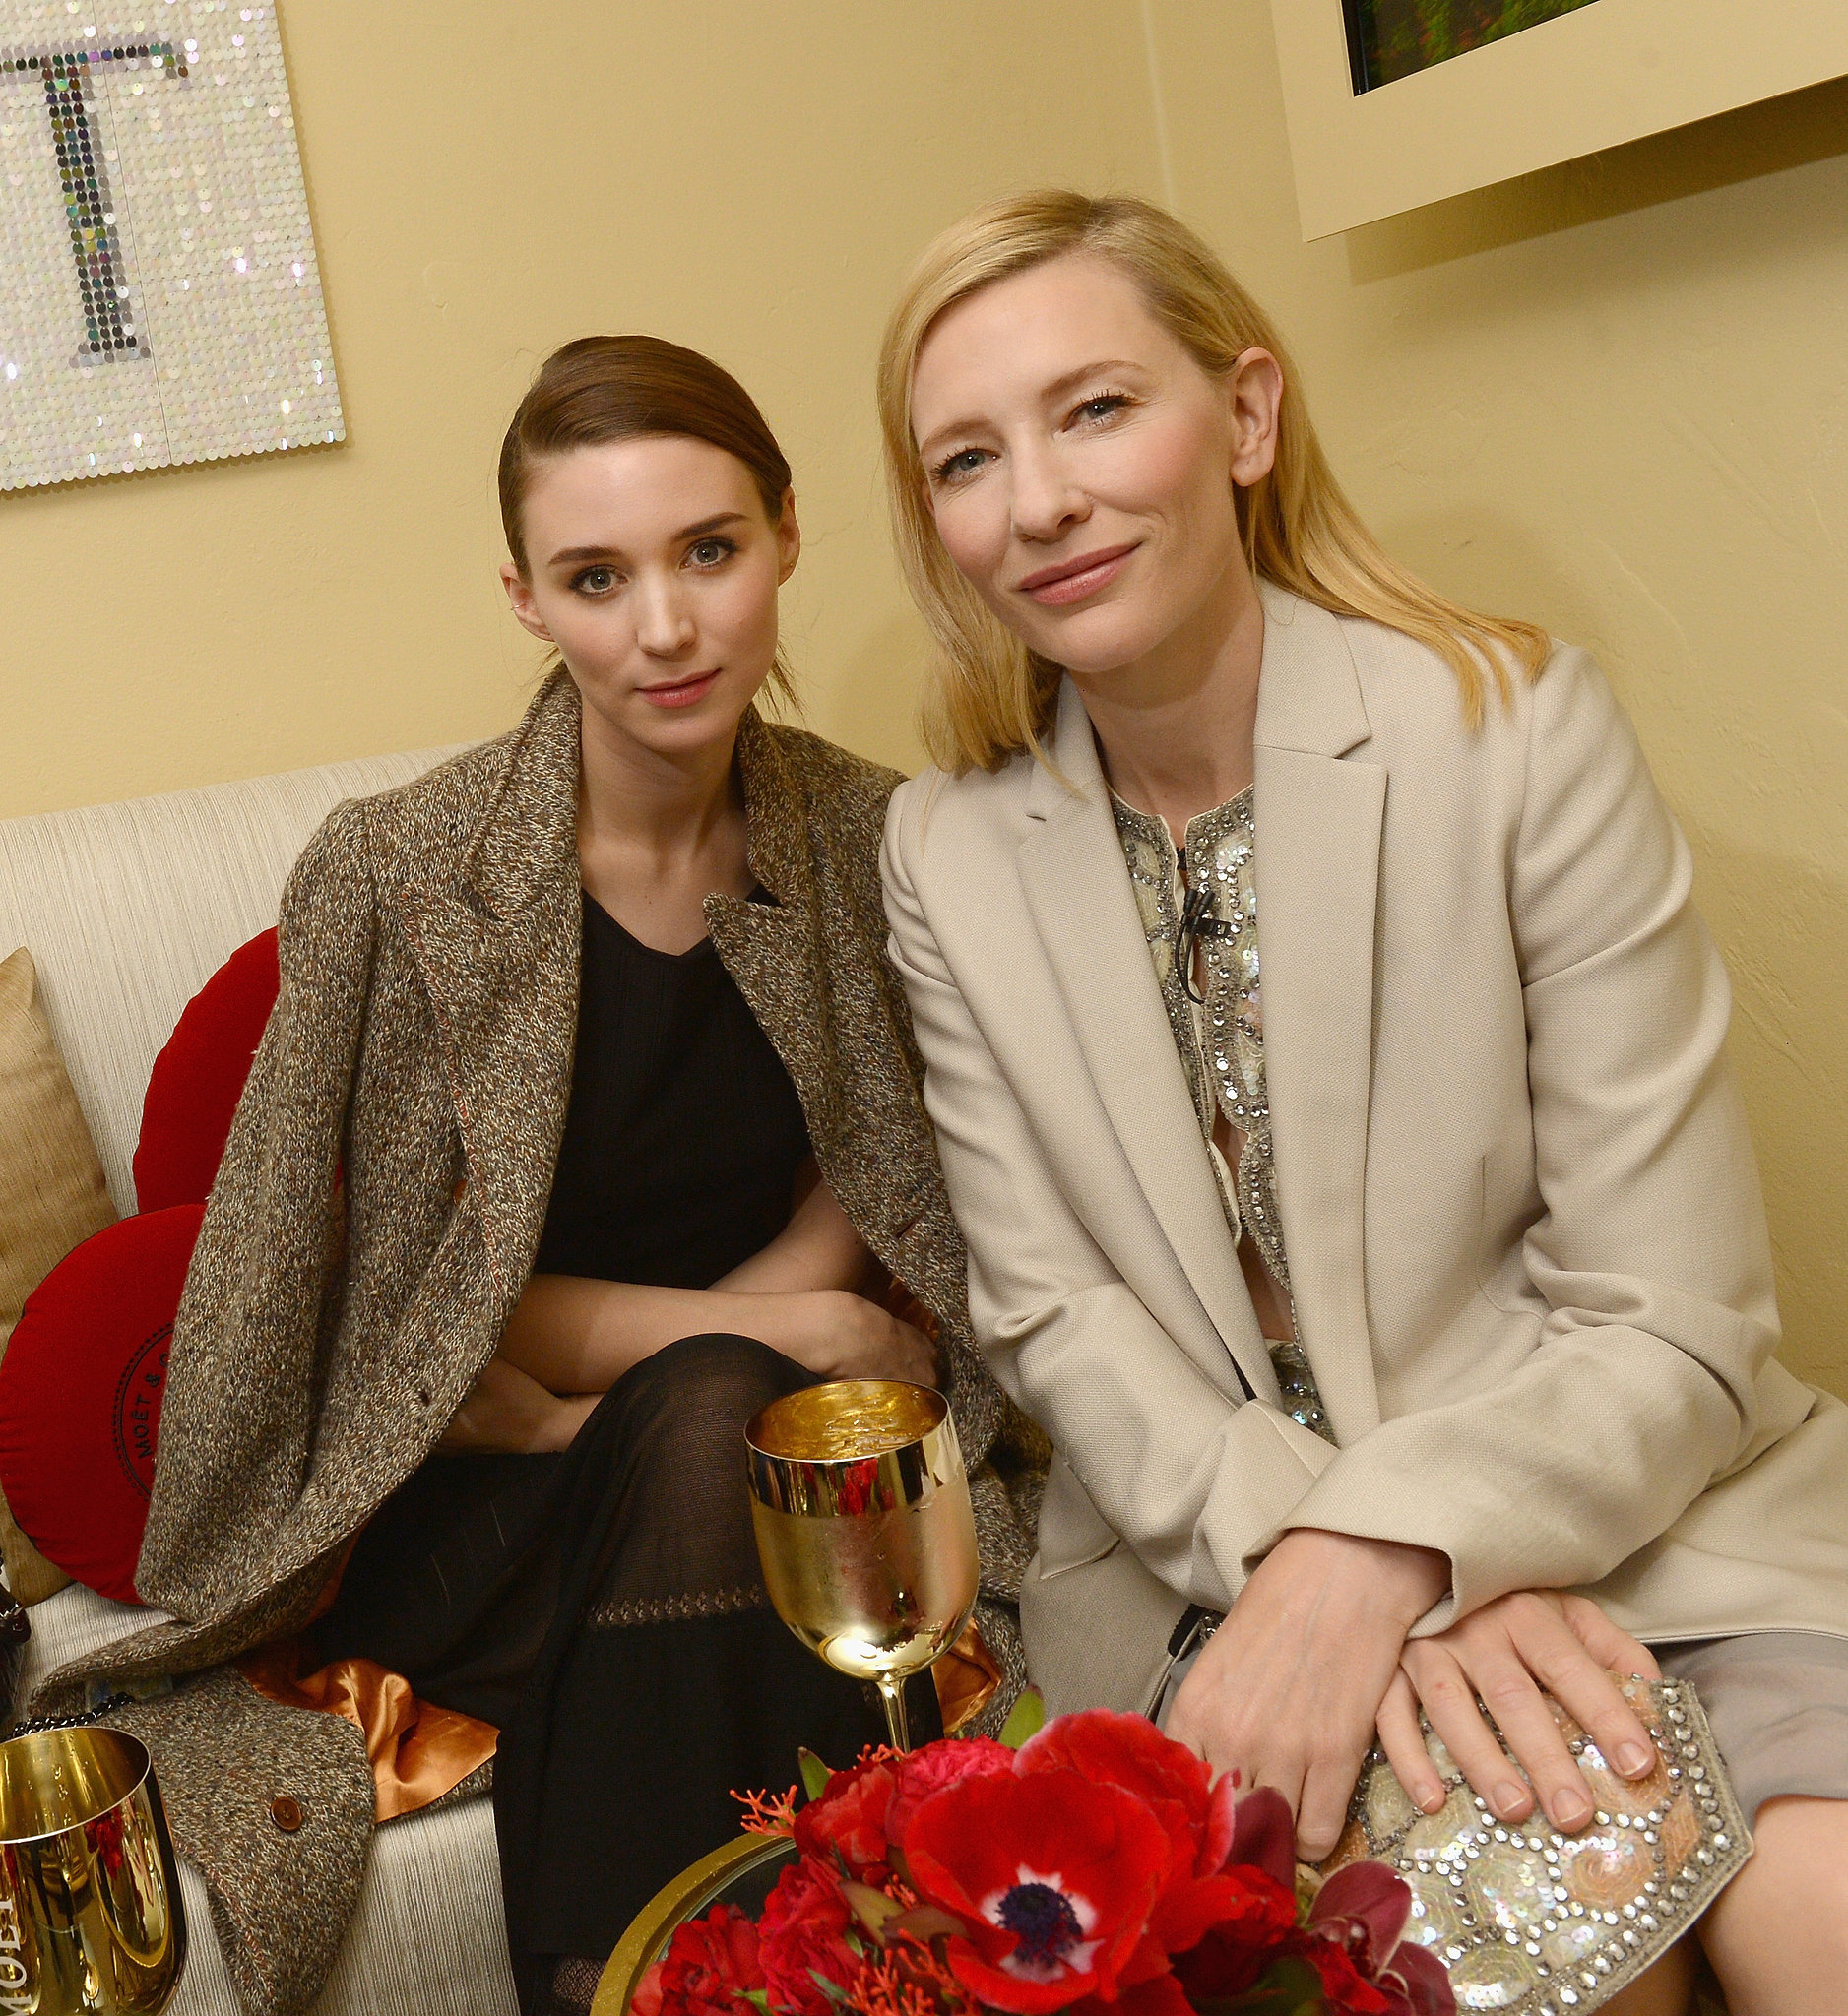 Cate Blanchett Celebrates Another Win With Rooney Mara